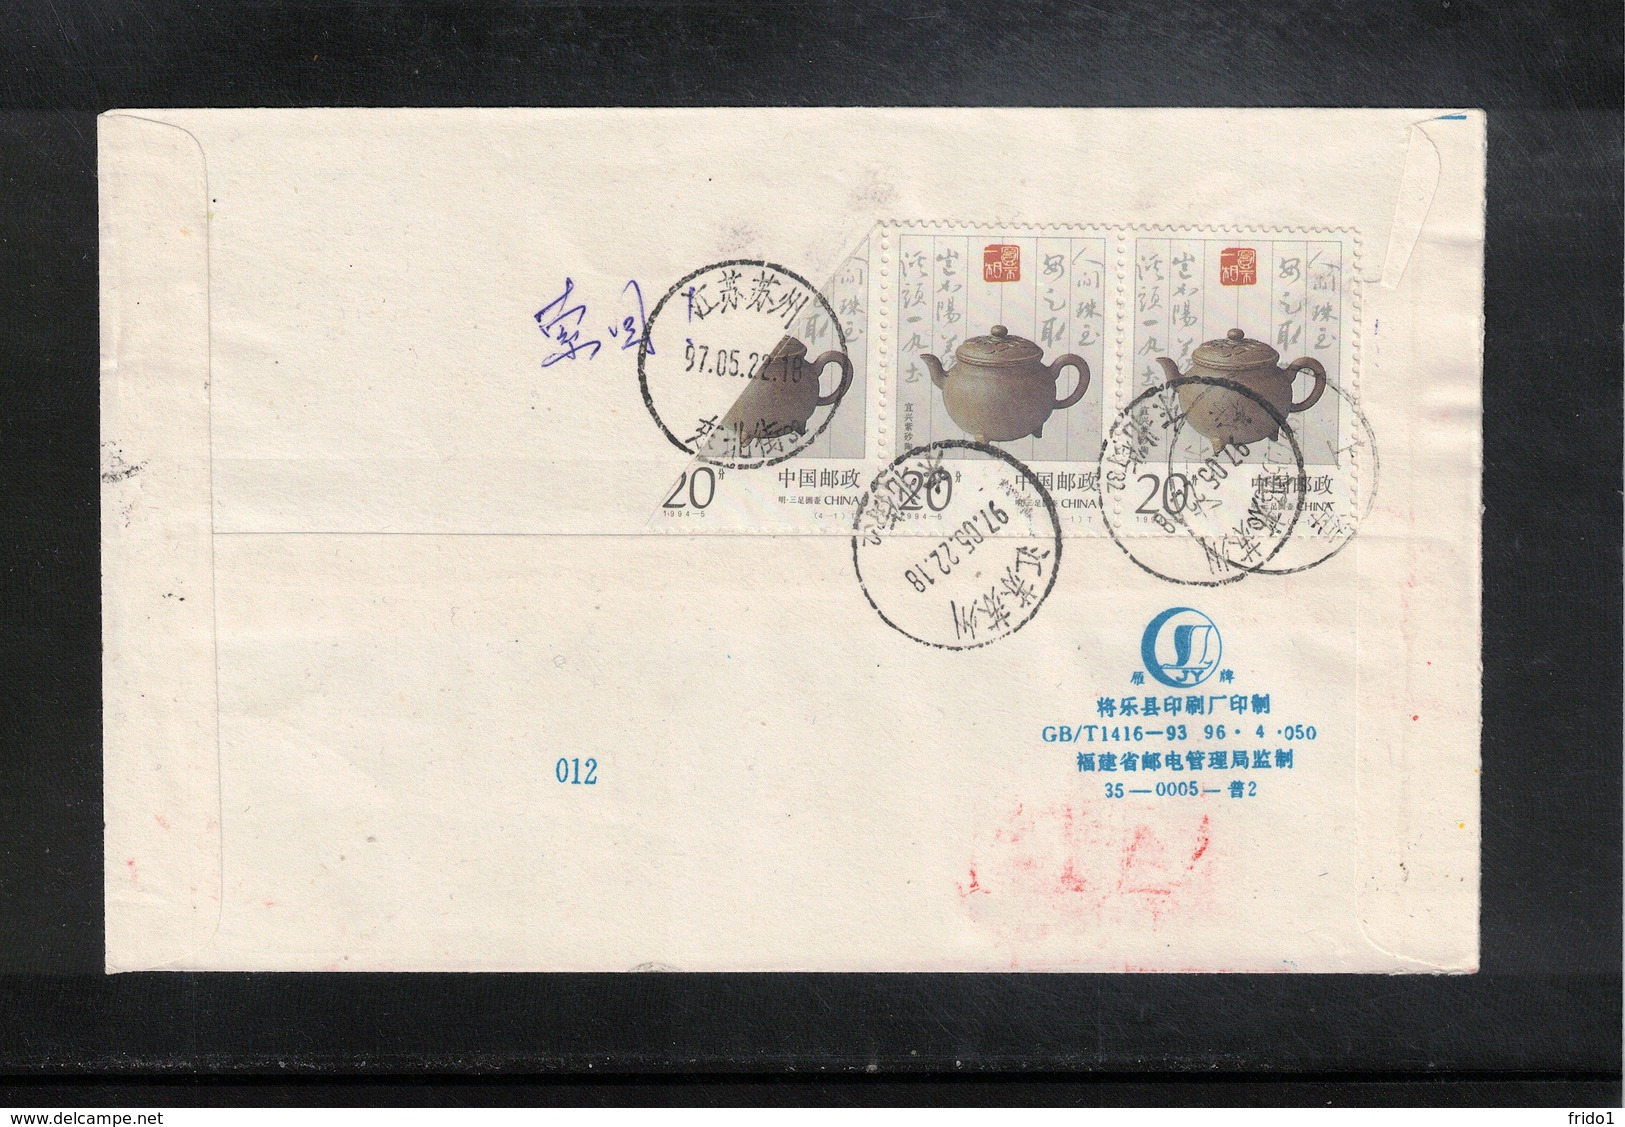 China 1997  Interesting  Letter With 2 And 1/2 Stamps As Postage - 1949 - ... République Populaire